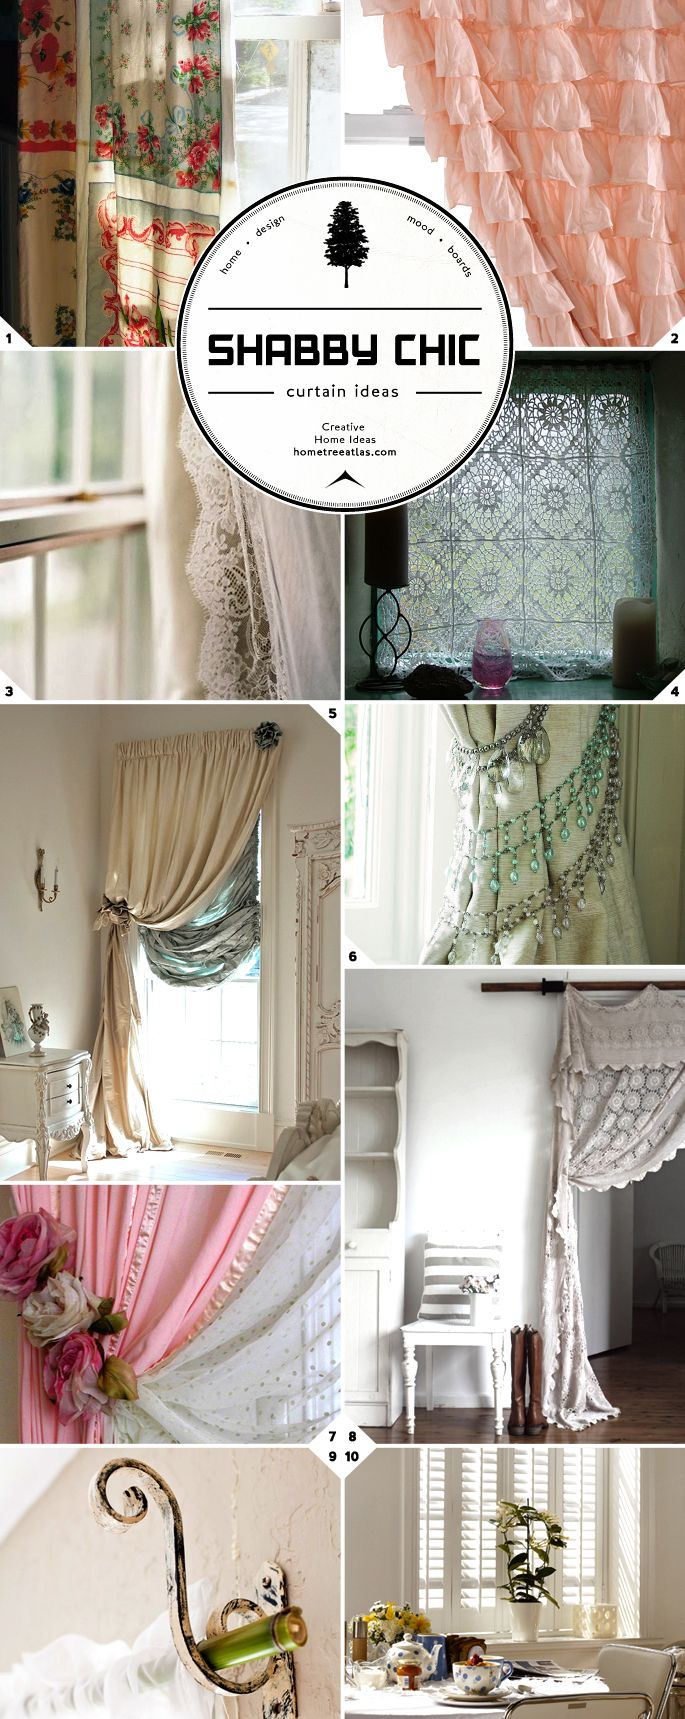 Shabby chic living room curtains - Window Treatment Style Shabby Chic Curtains Rods And Tie Backs